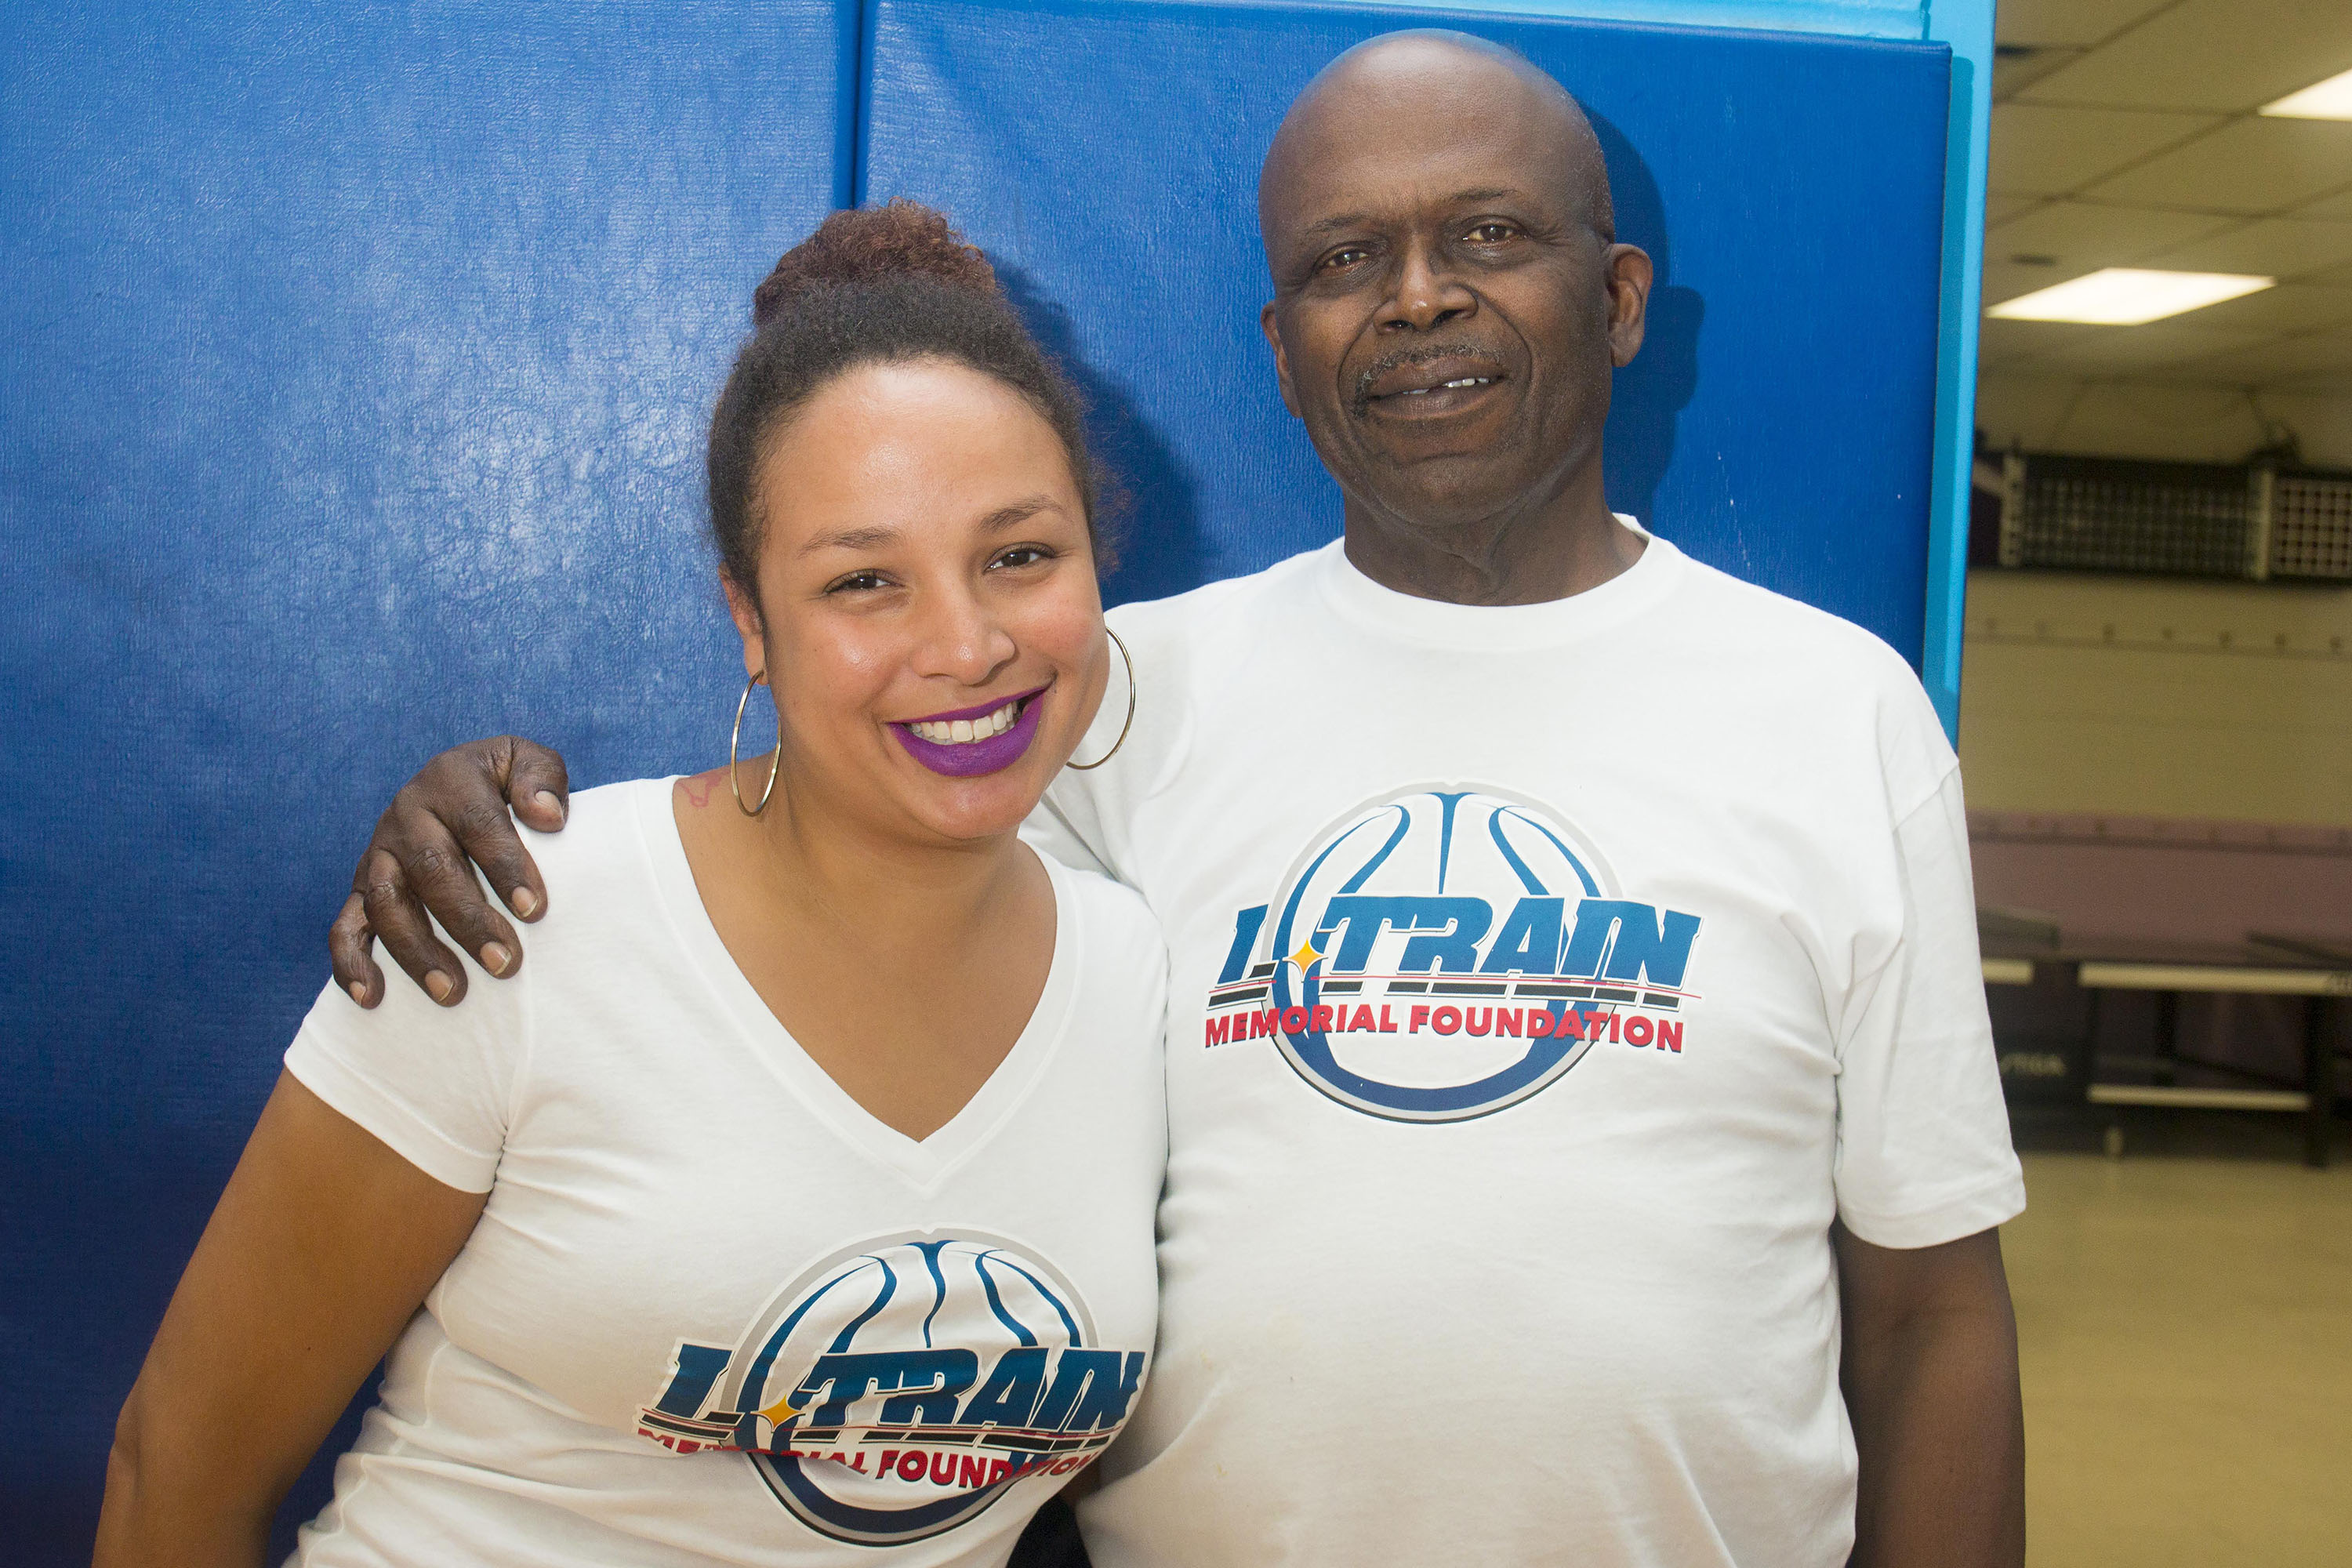 L-Train Memorial Foundation - Annual 3-On-3 Tournament (Boys and Girls Club Union, NJ) 08-07-16_0015